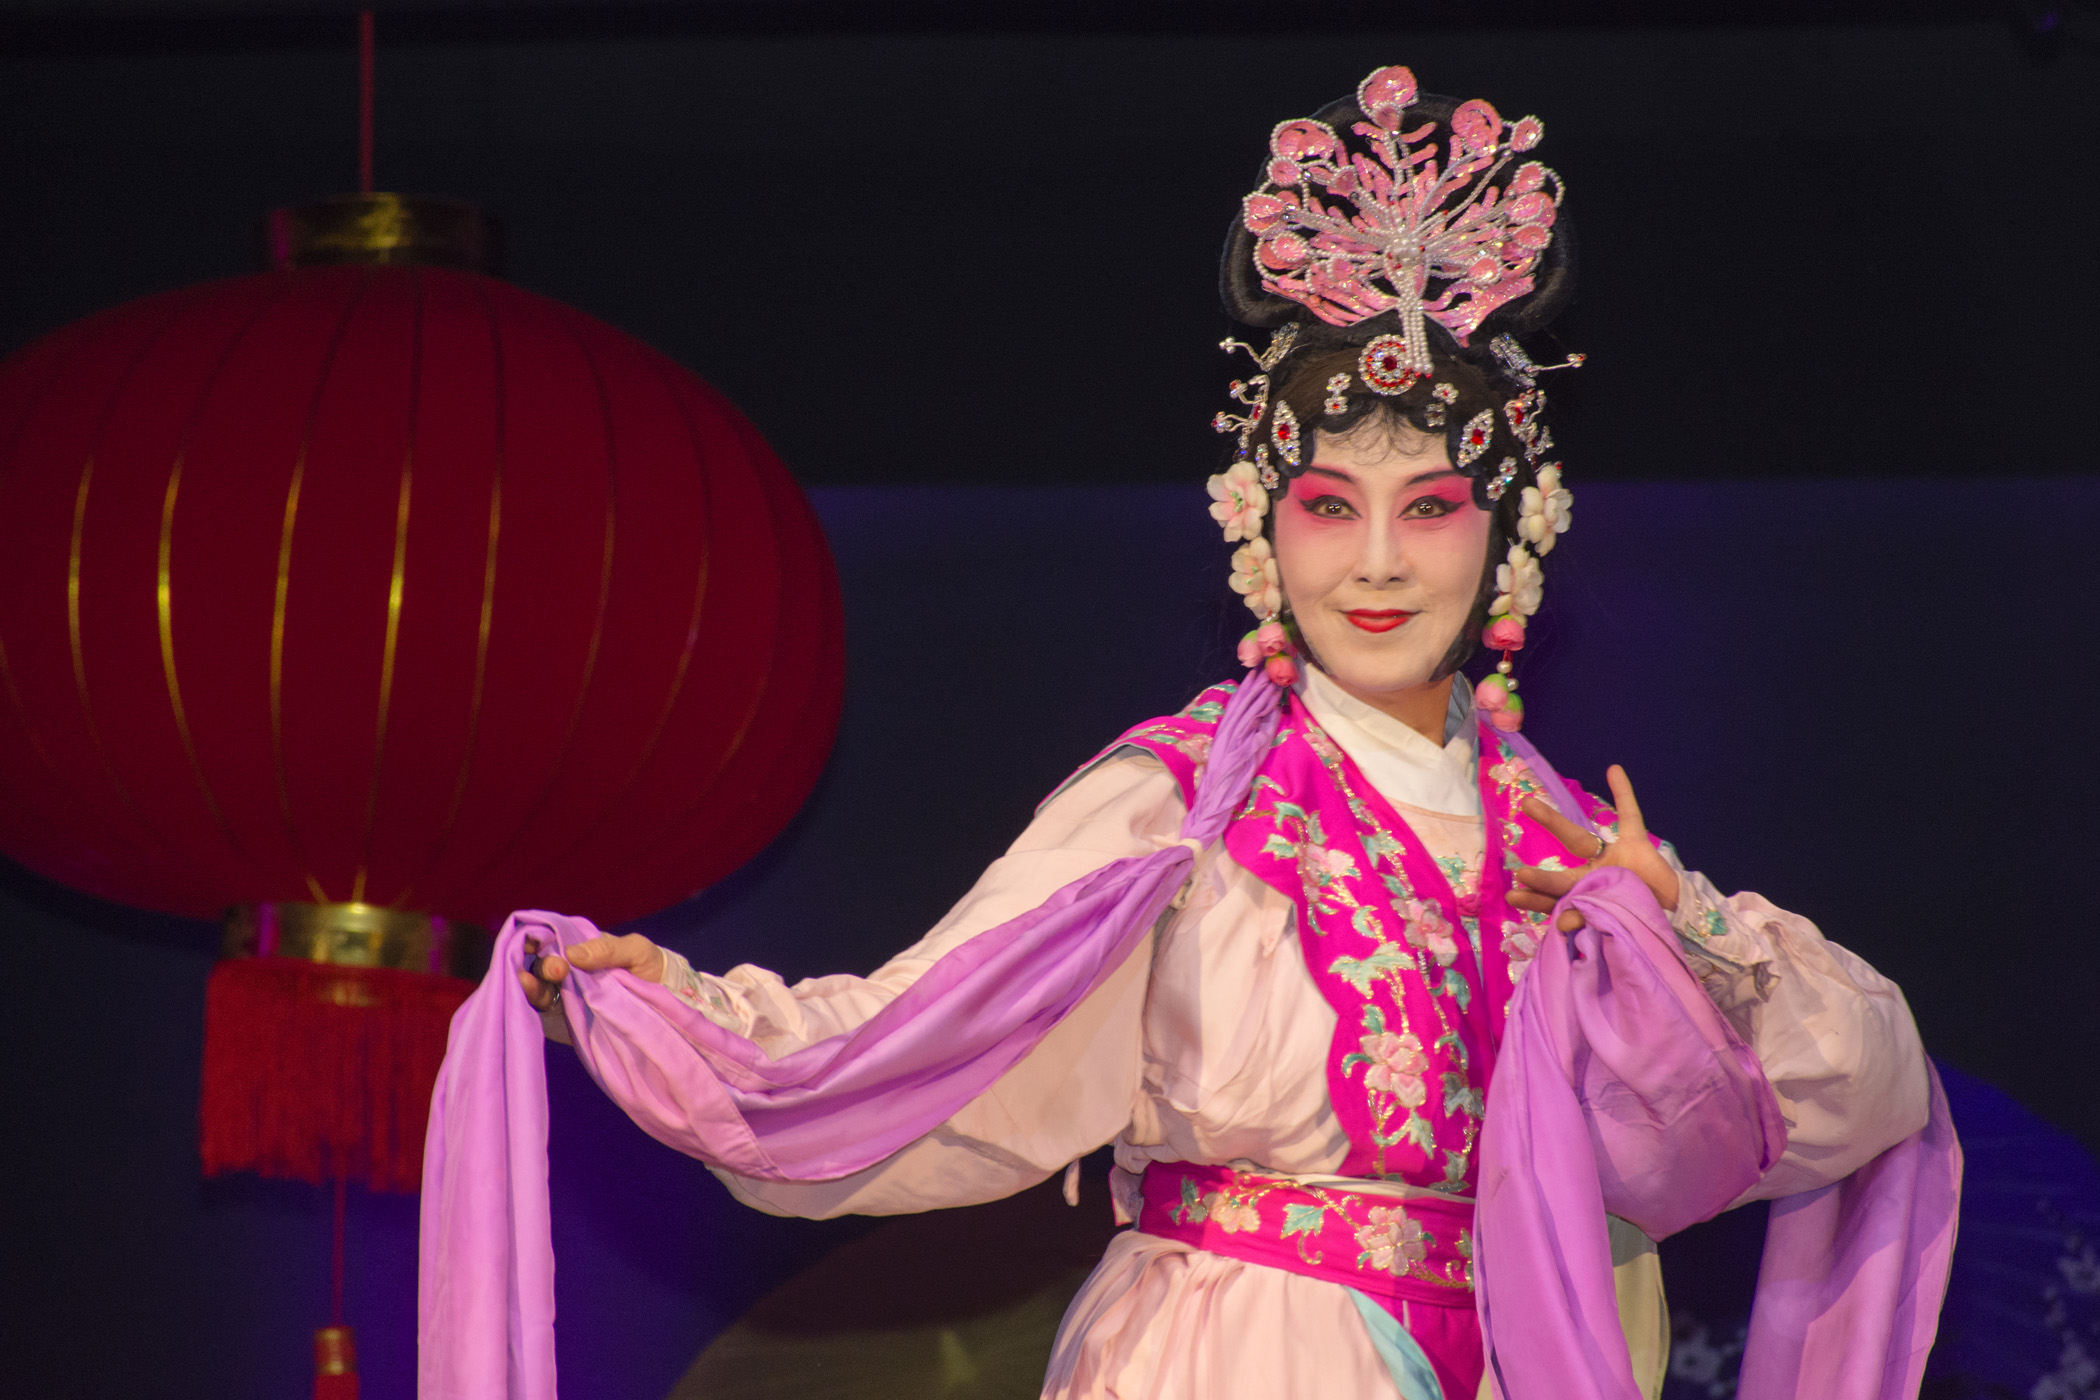 female in traditional Chinese dress and makeup